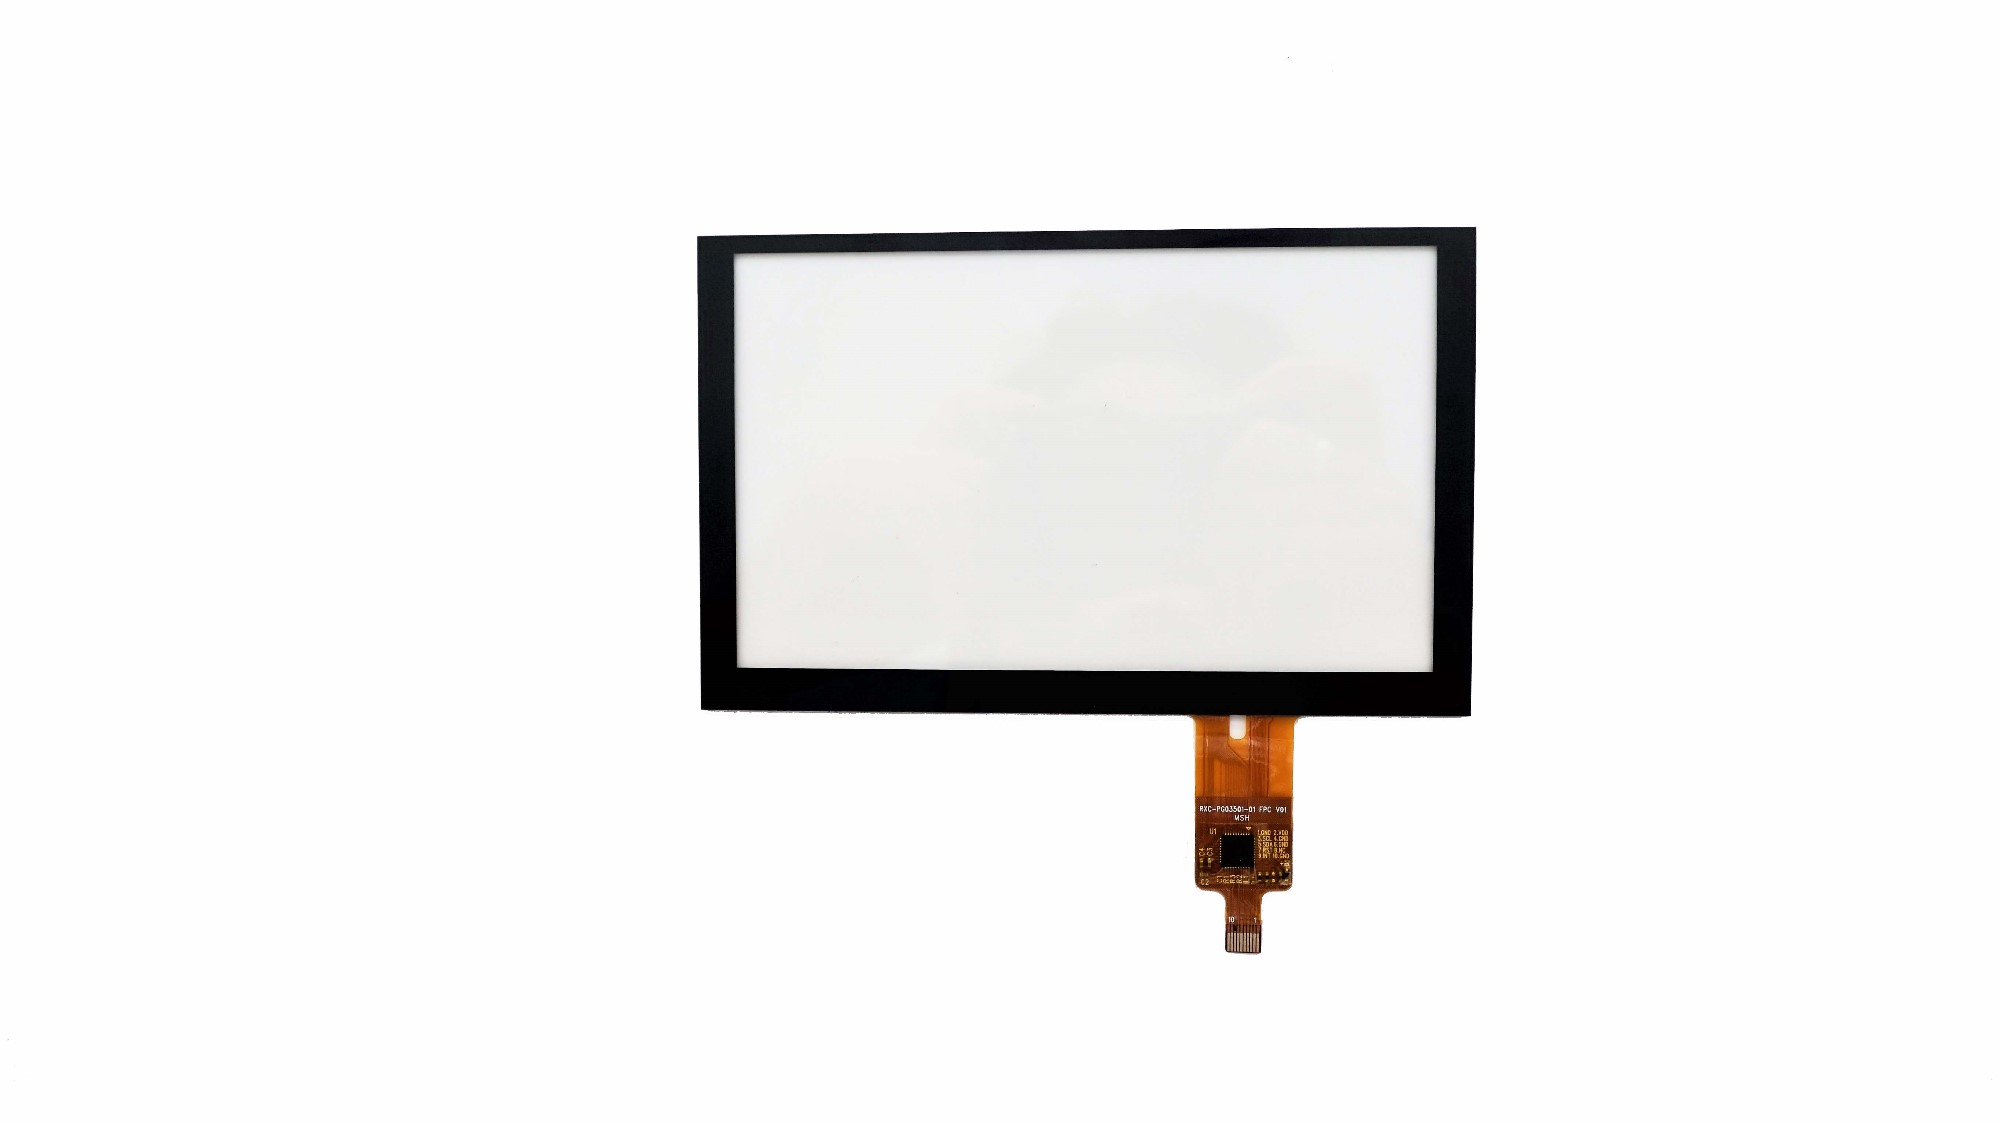 Custom China 5.0 Inch Projected Capacitive Touch Screen Panel, 5.0 Inch Projected Capacitive Touch Screen Panel Factory, 5.0 Inch Projected Capacitive Touch Screen Panel OEM